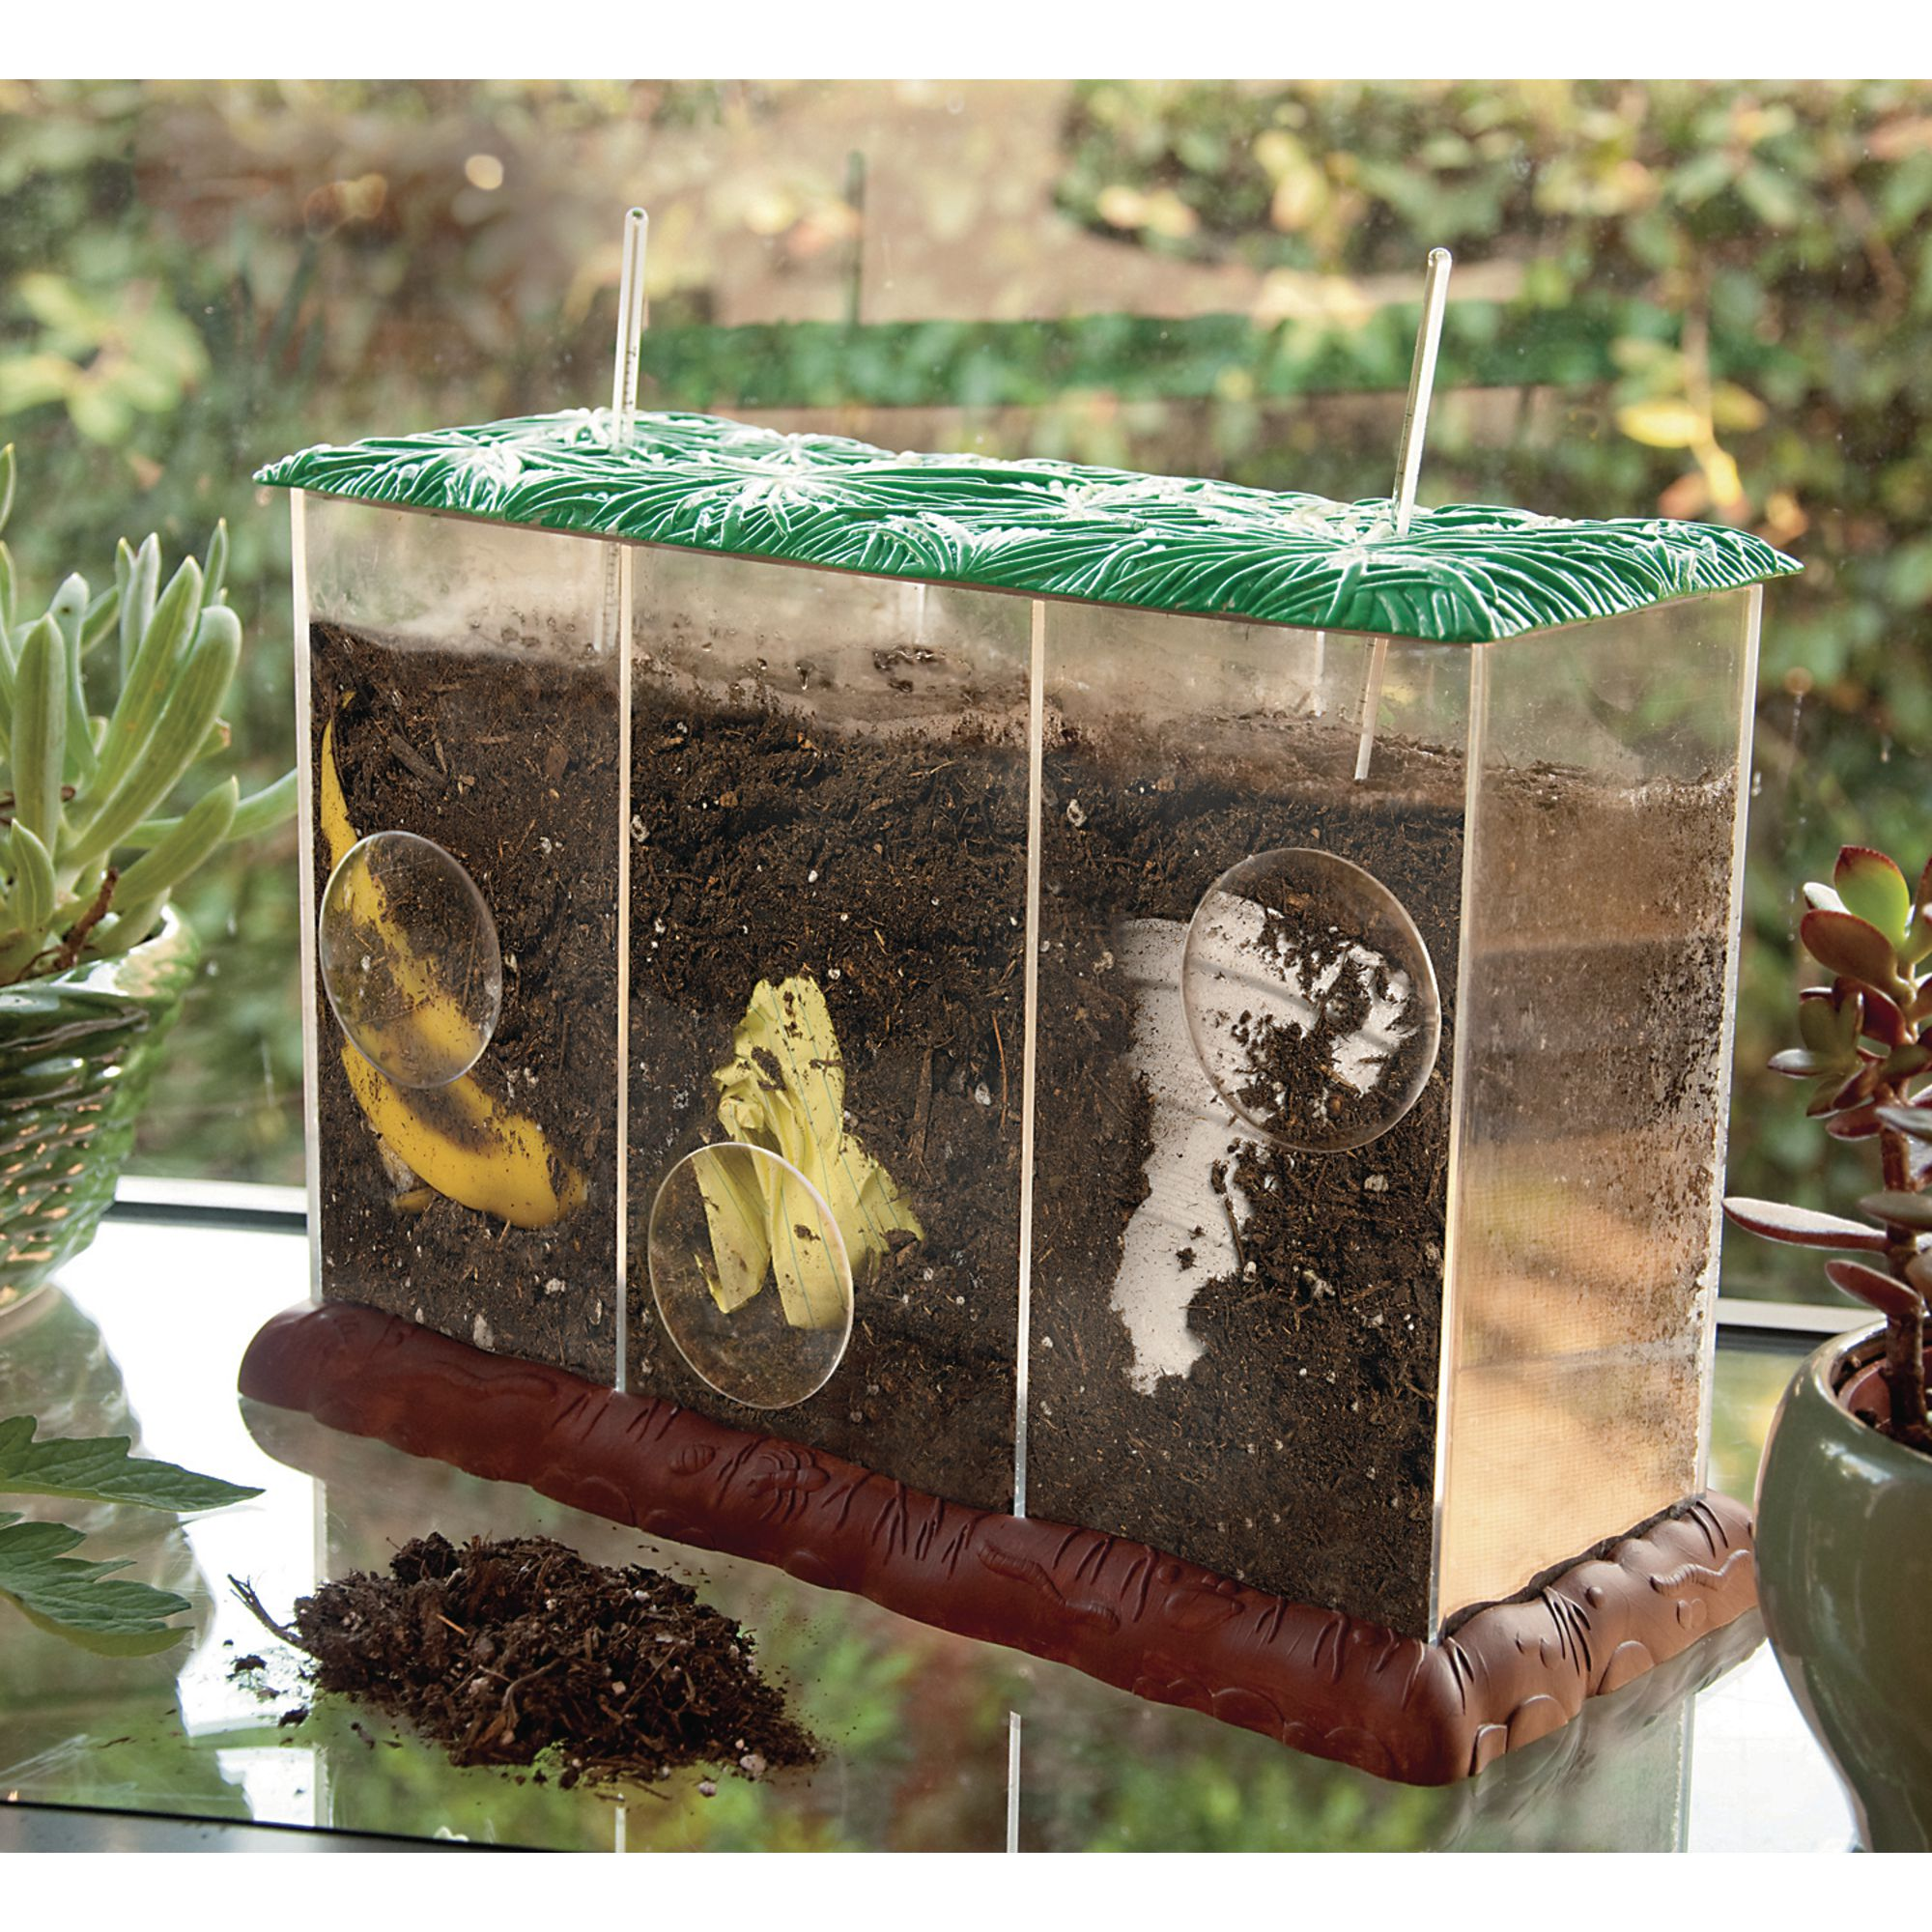 See Through Compost Containers